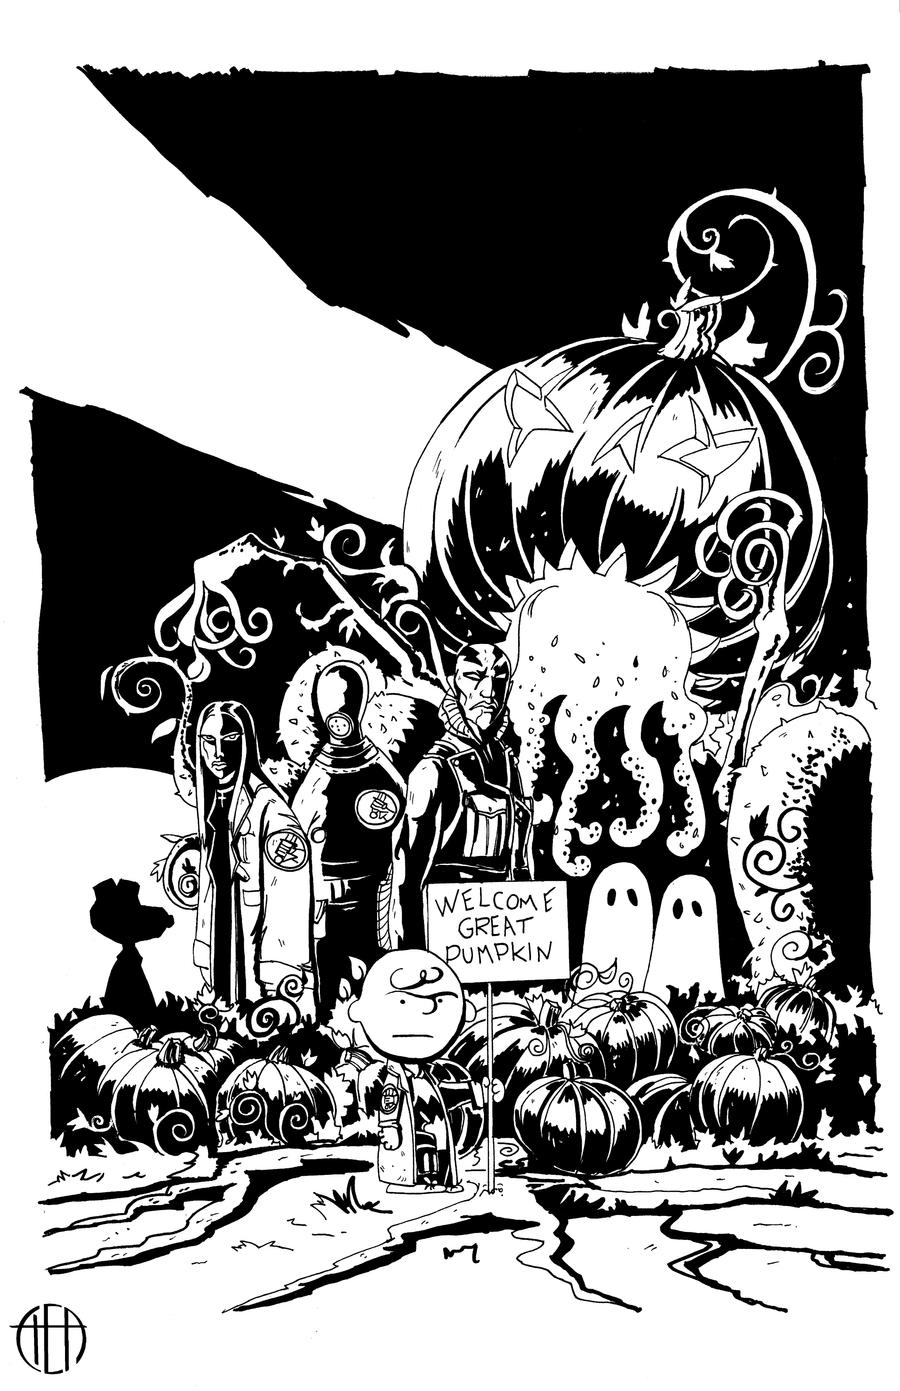 B.P.R.D.: The Great Pumpkin - INKS by Theamat